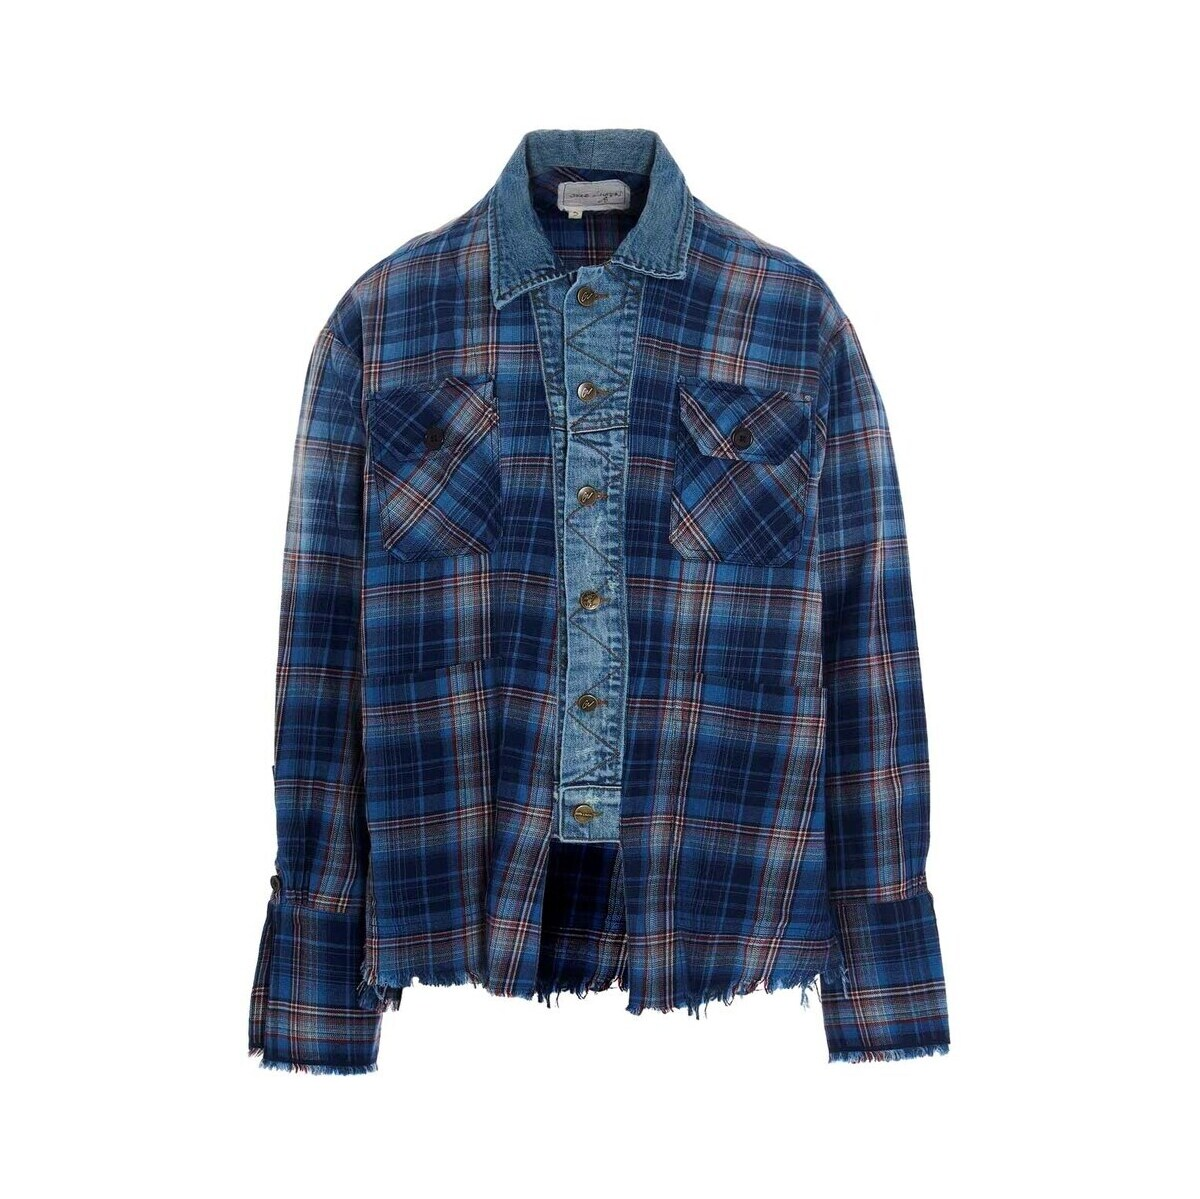 トップス, カジュアルシャツ GREG LAUREN Multicolor Agoura Trucker Front Boxy Studio overshirt 2021 BM110BLUEPLAID ju